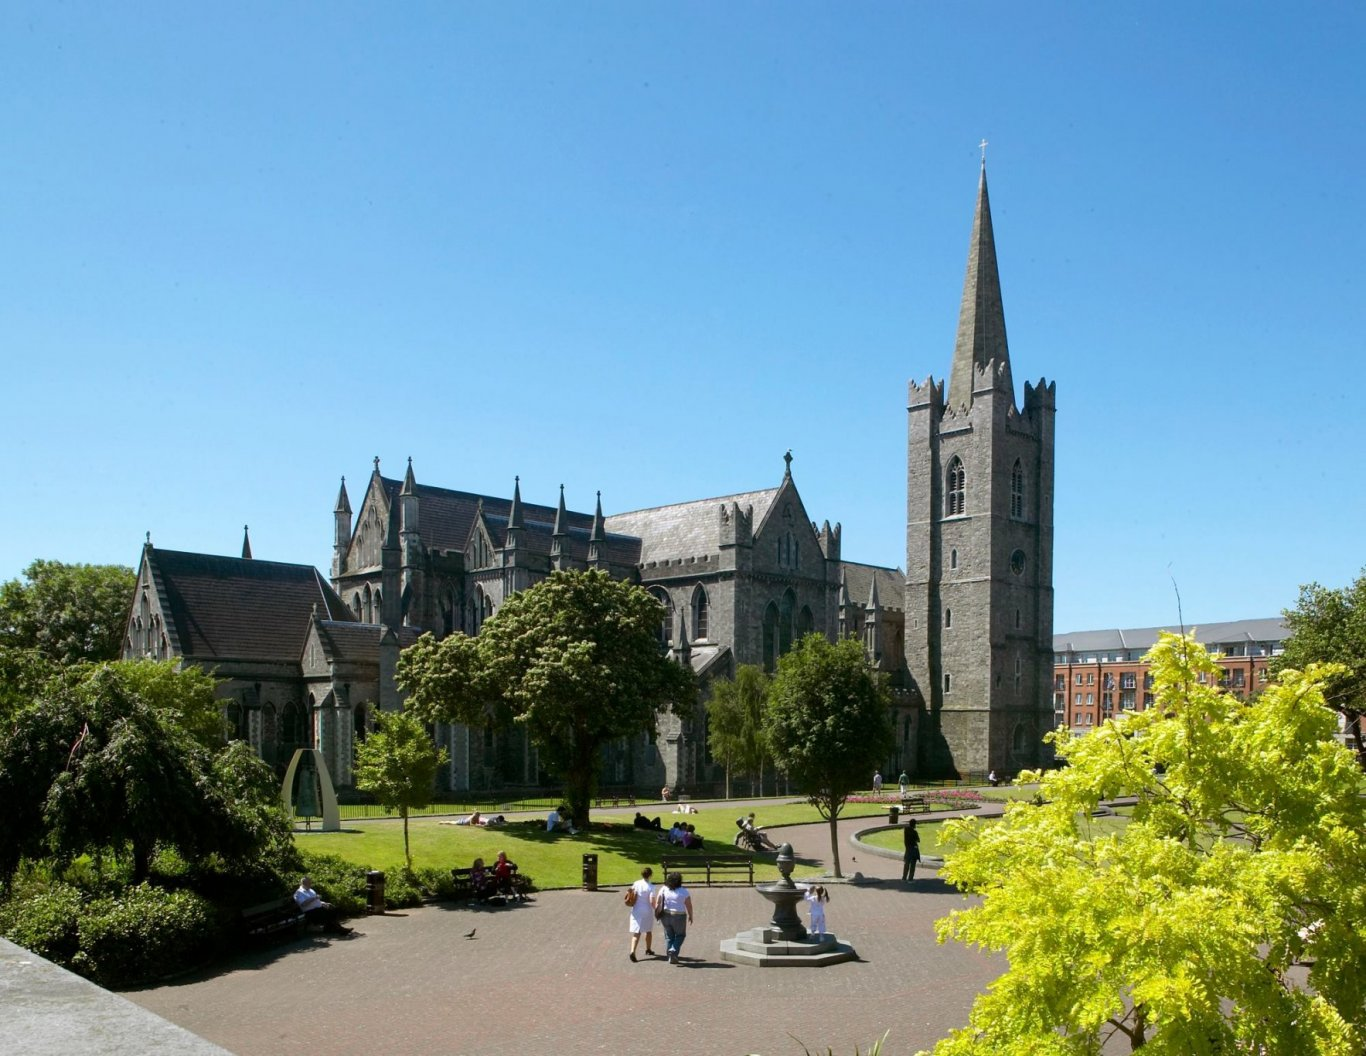 St Patrick's Park with St. Patrick's Cathedral and blue sky in background